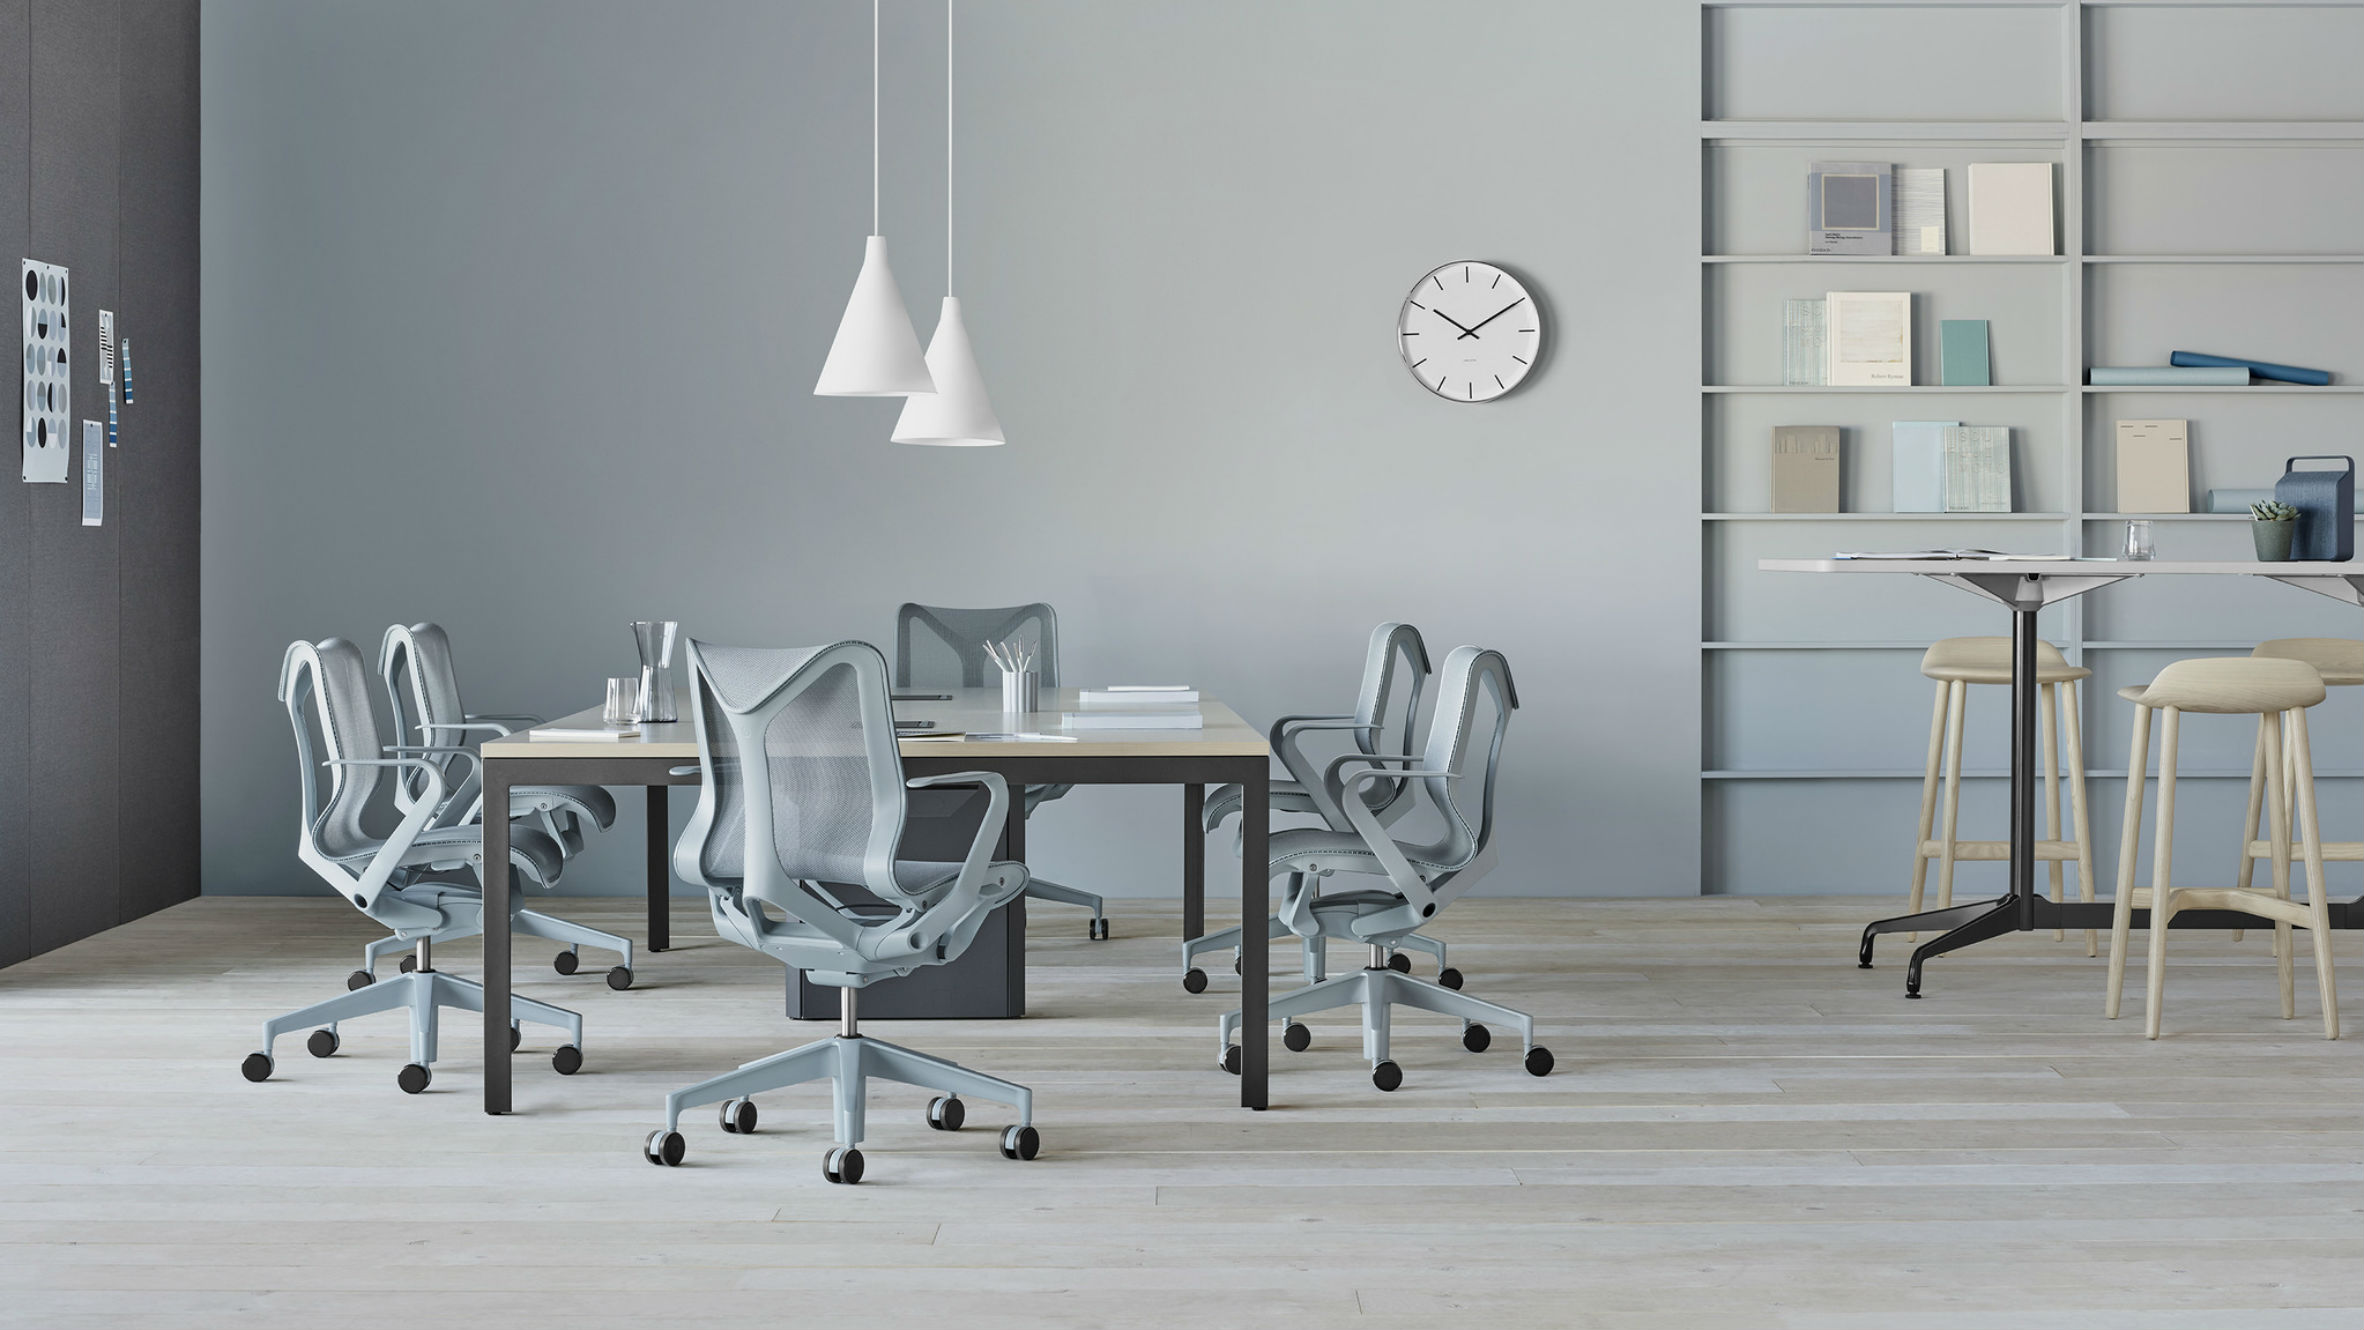 Cosm Chairs, by Studio 7.5 for Herman Miller